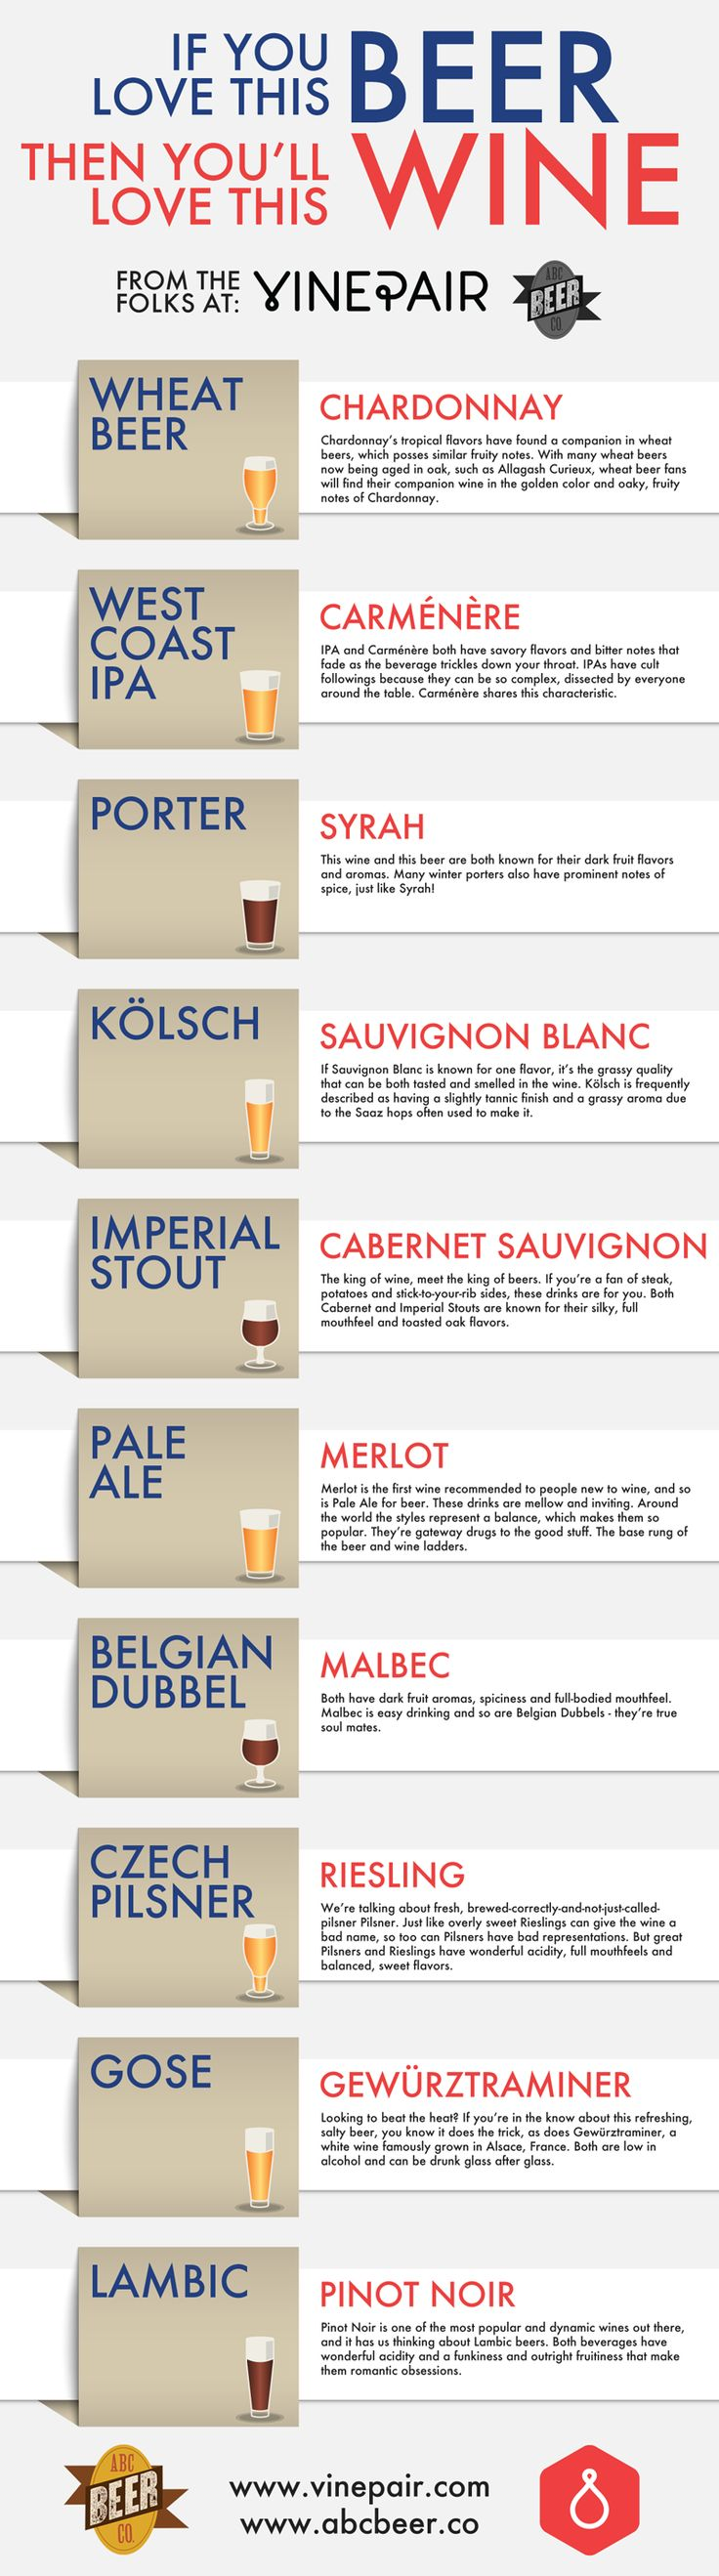 Comparable Beer and Wine Pairing Infographic